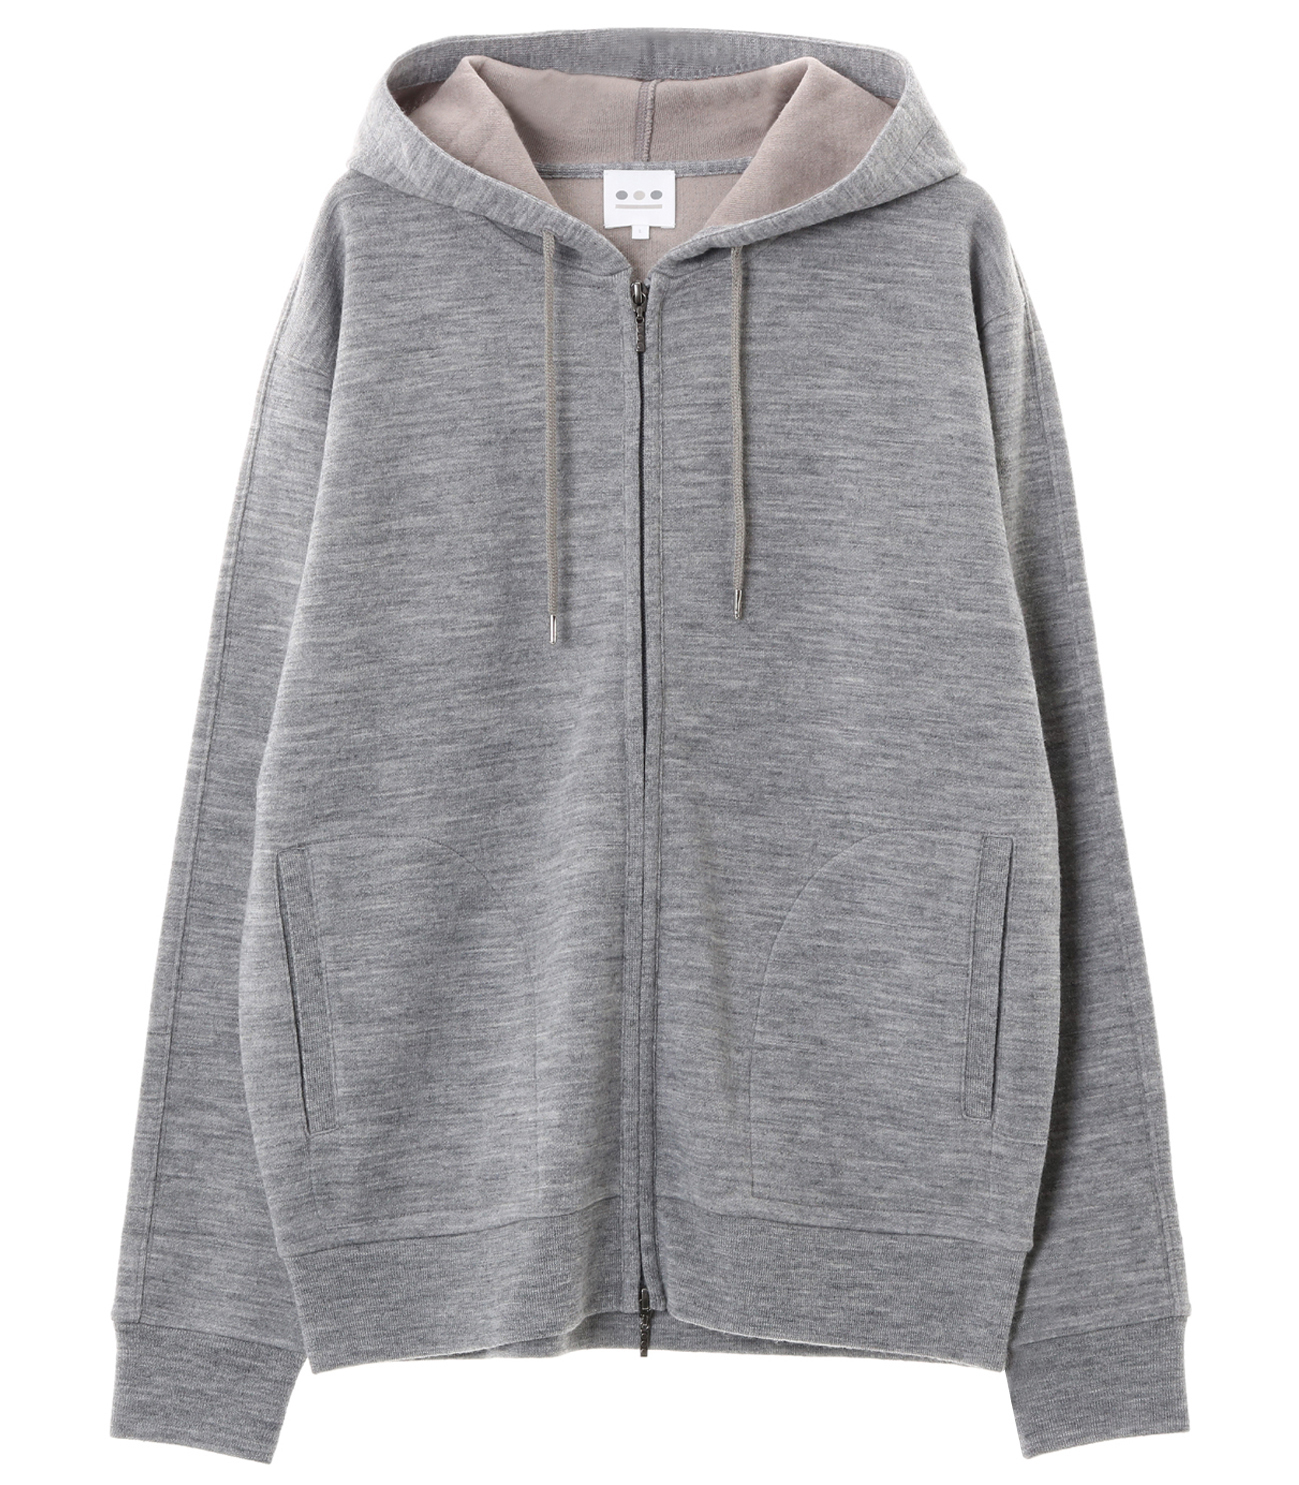 double face knit zip up hd 詳細画像 grey 1